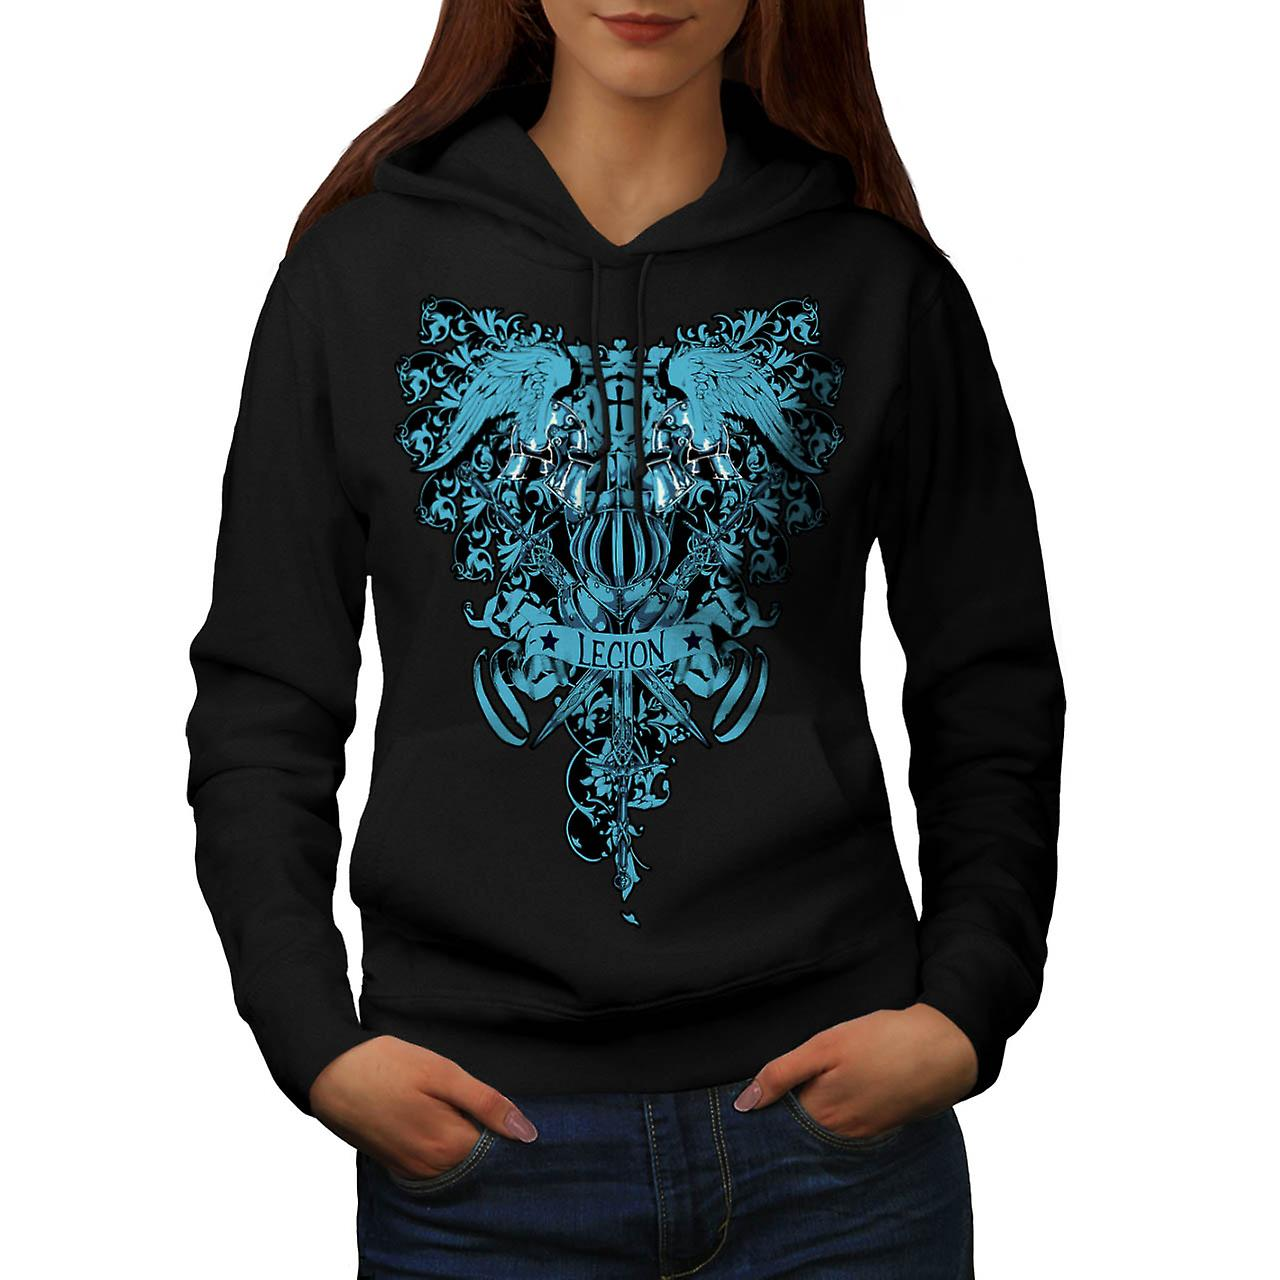 Kingdom Legion Cross Dead Symbol Women Black Hoodie | Wellcoda